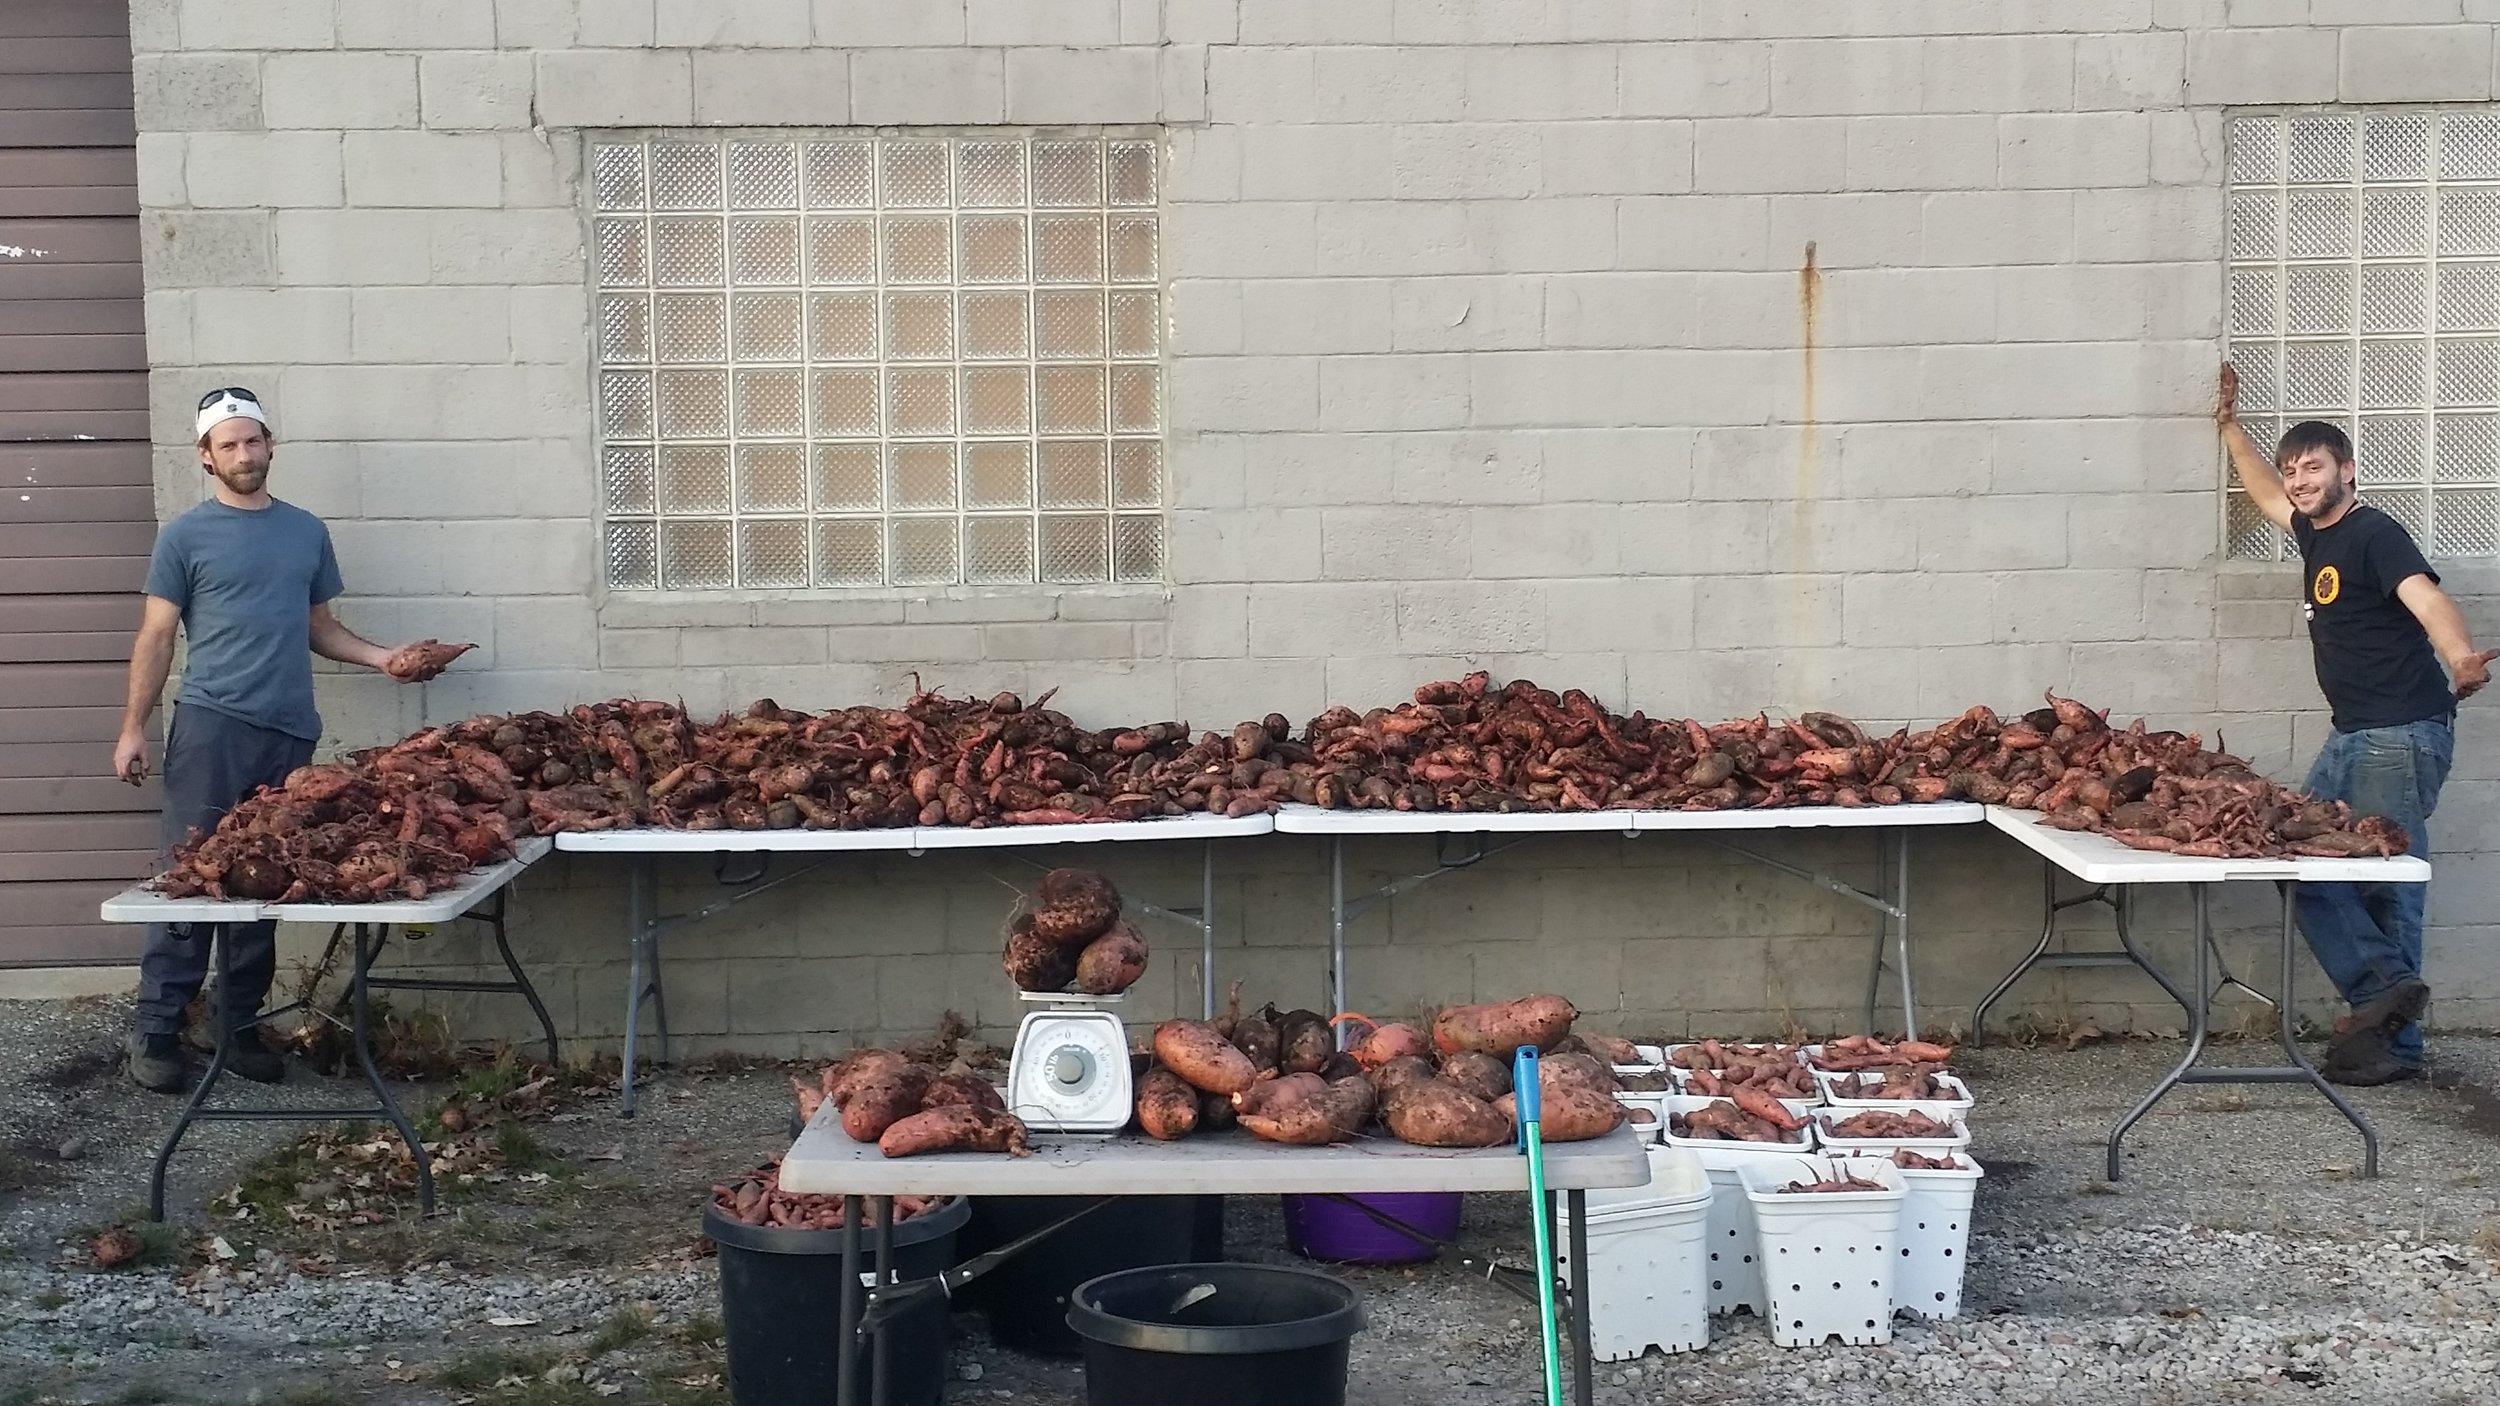 So many Sweet Potatoes all grown above ground!